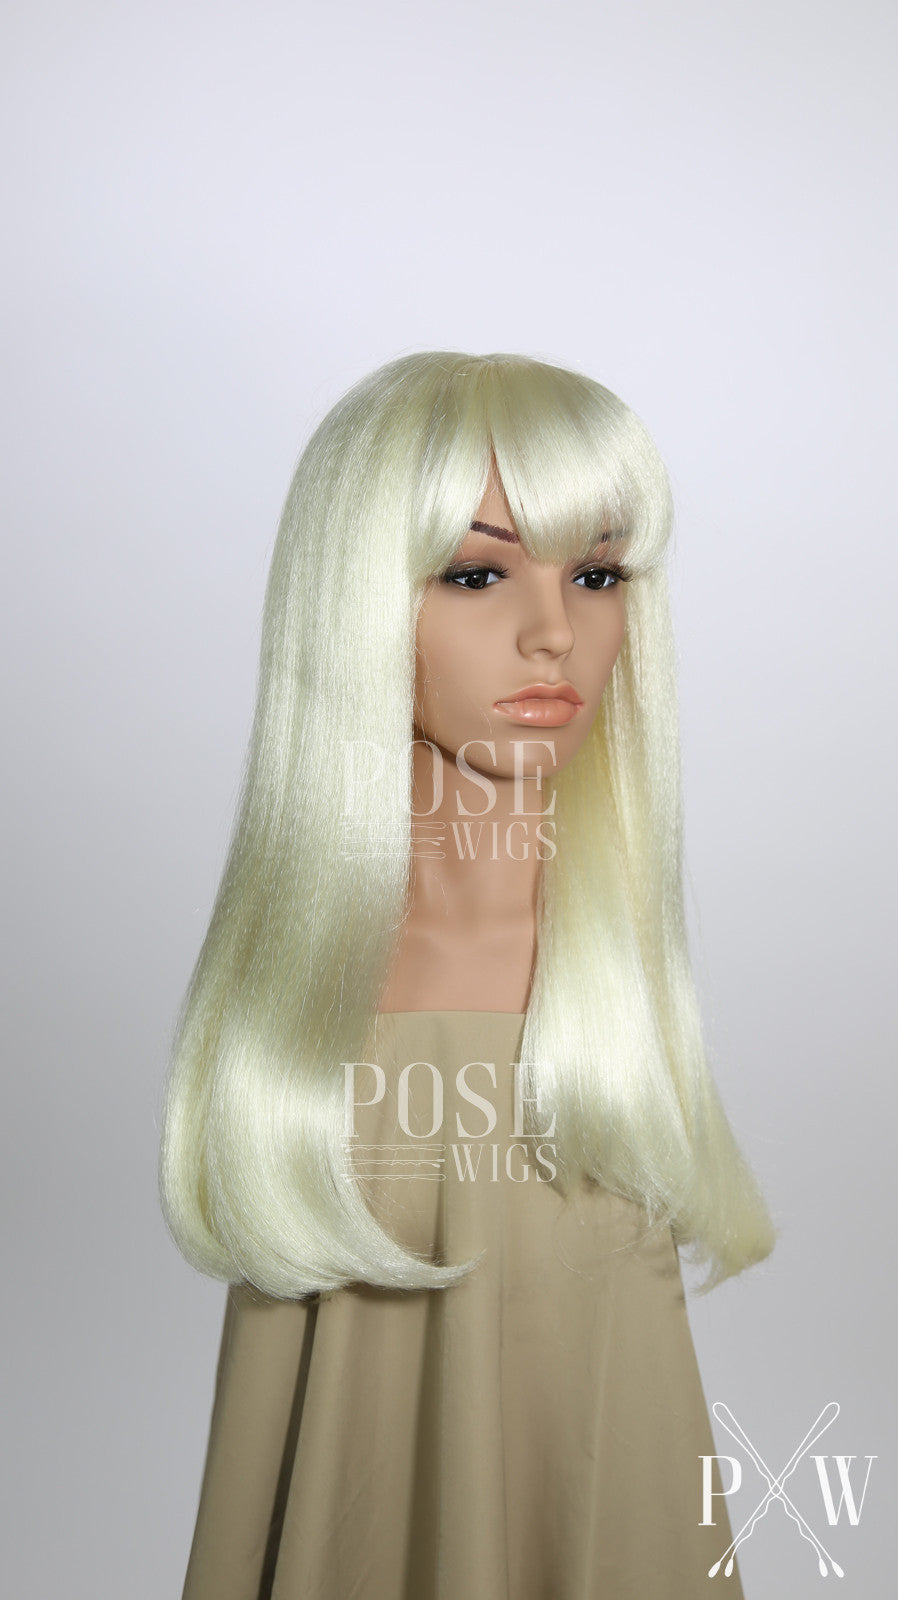 ... White Blonde Long Straight with Bangs Costume Wig FKEL45 ...  sc 1 st  Pose Wigs & White Blonde Long Straight with Bangs Costume Wig FKEL45 u2013 Pose Wigs